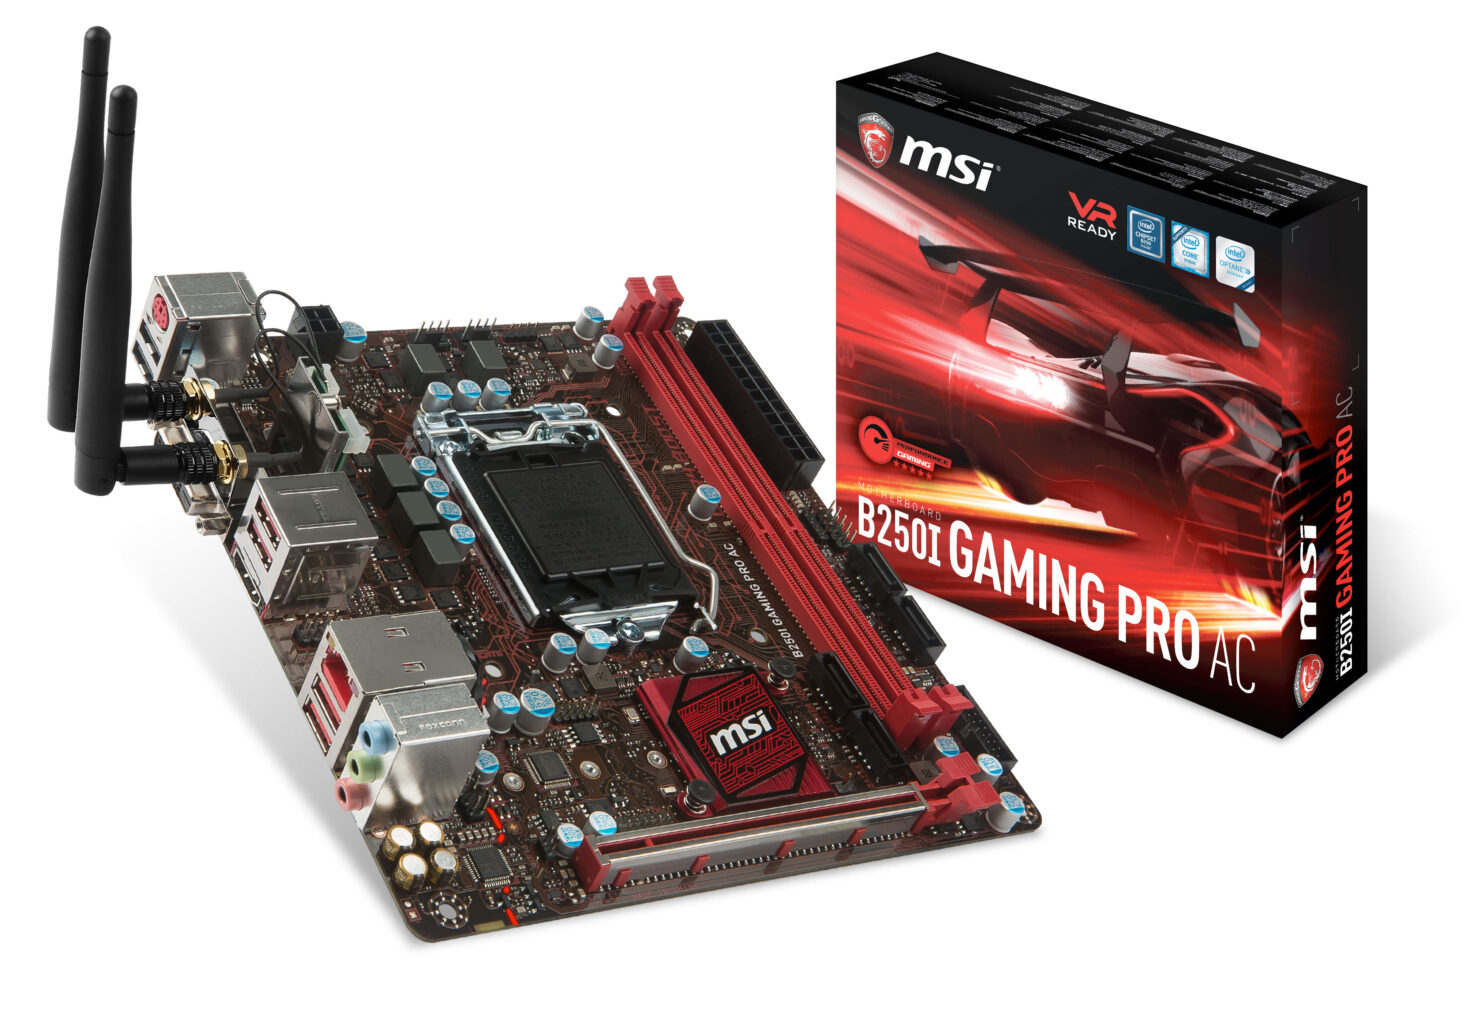 msi-b250i_gaming_pro_ac_-product_picture-box